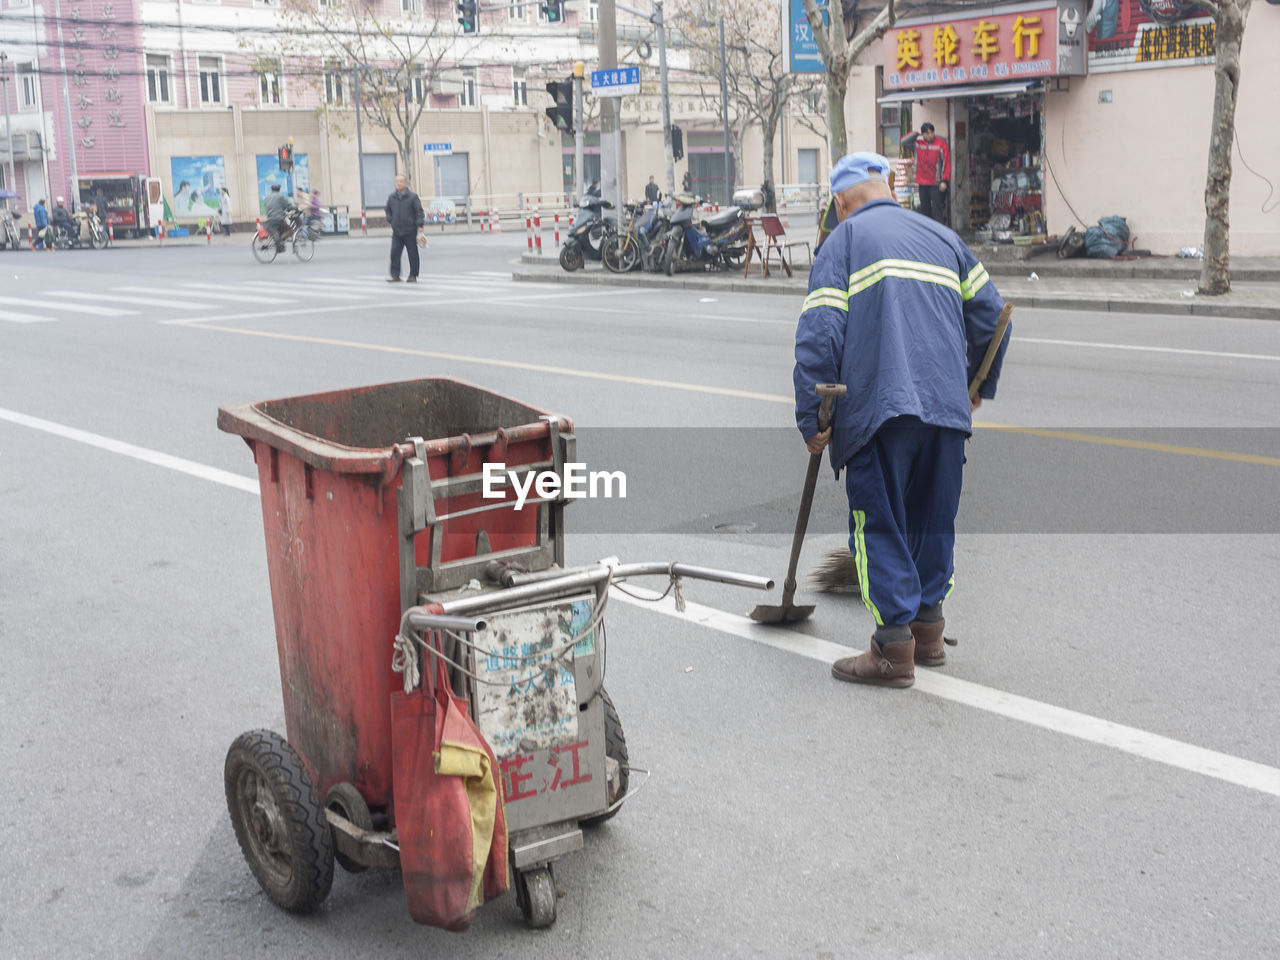 real people, full length, rear view, architecture, occupation, building exterior, built structure, one person, men, working, day, road, manual worker, reflective clothing, cleaning, outdoors, city, adult, people, adults only